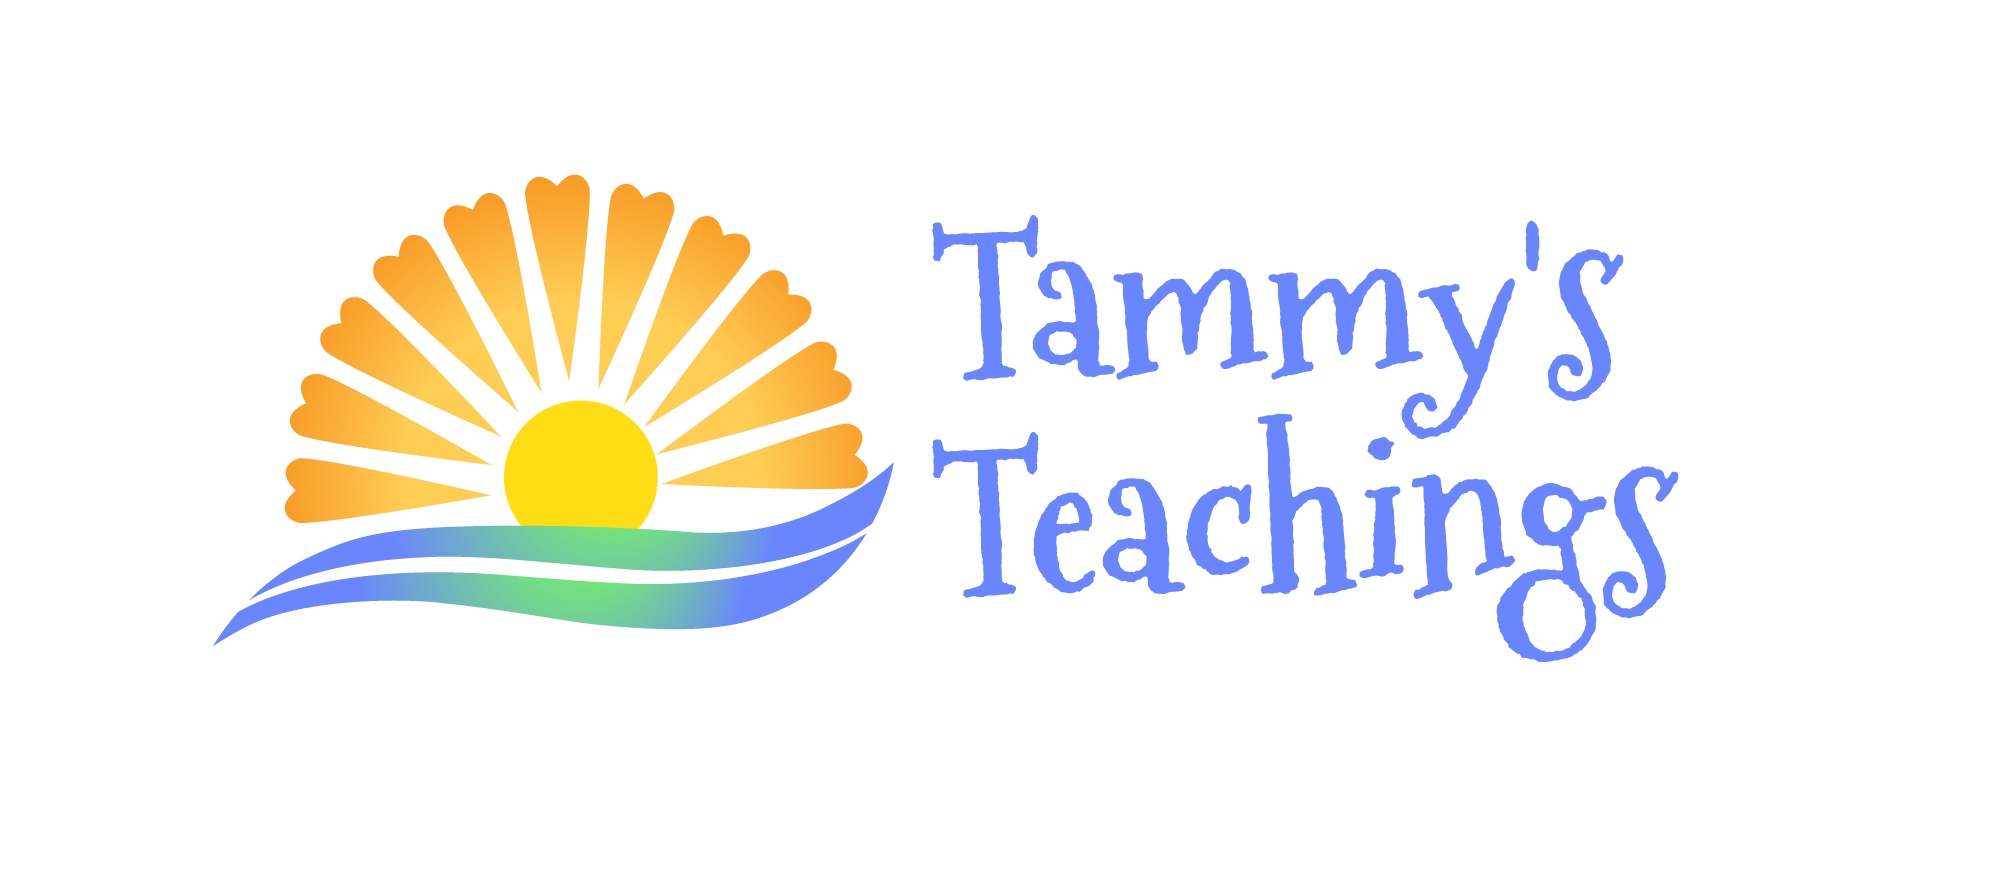 Tammy's Teachings Courses